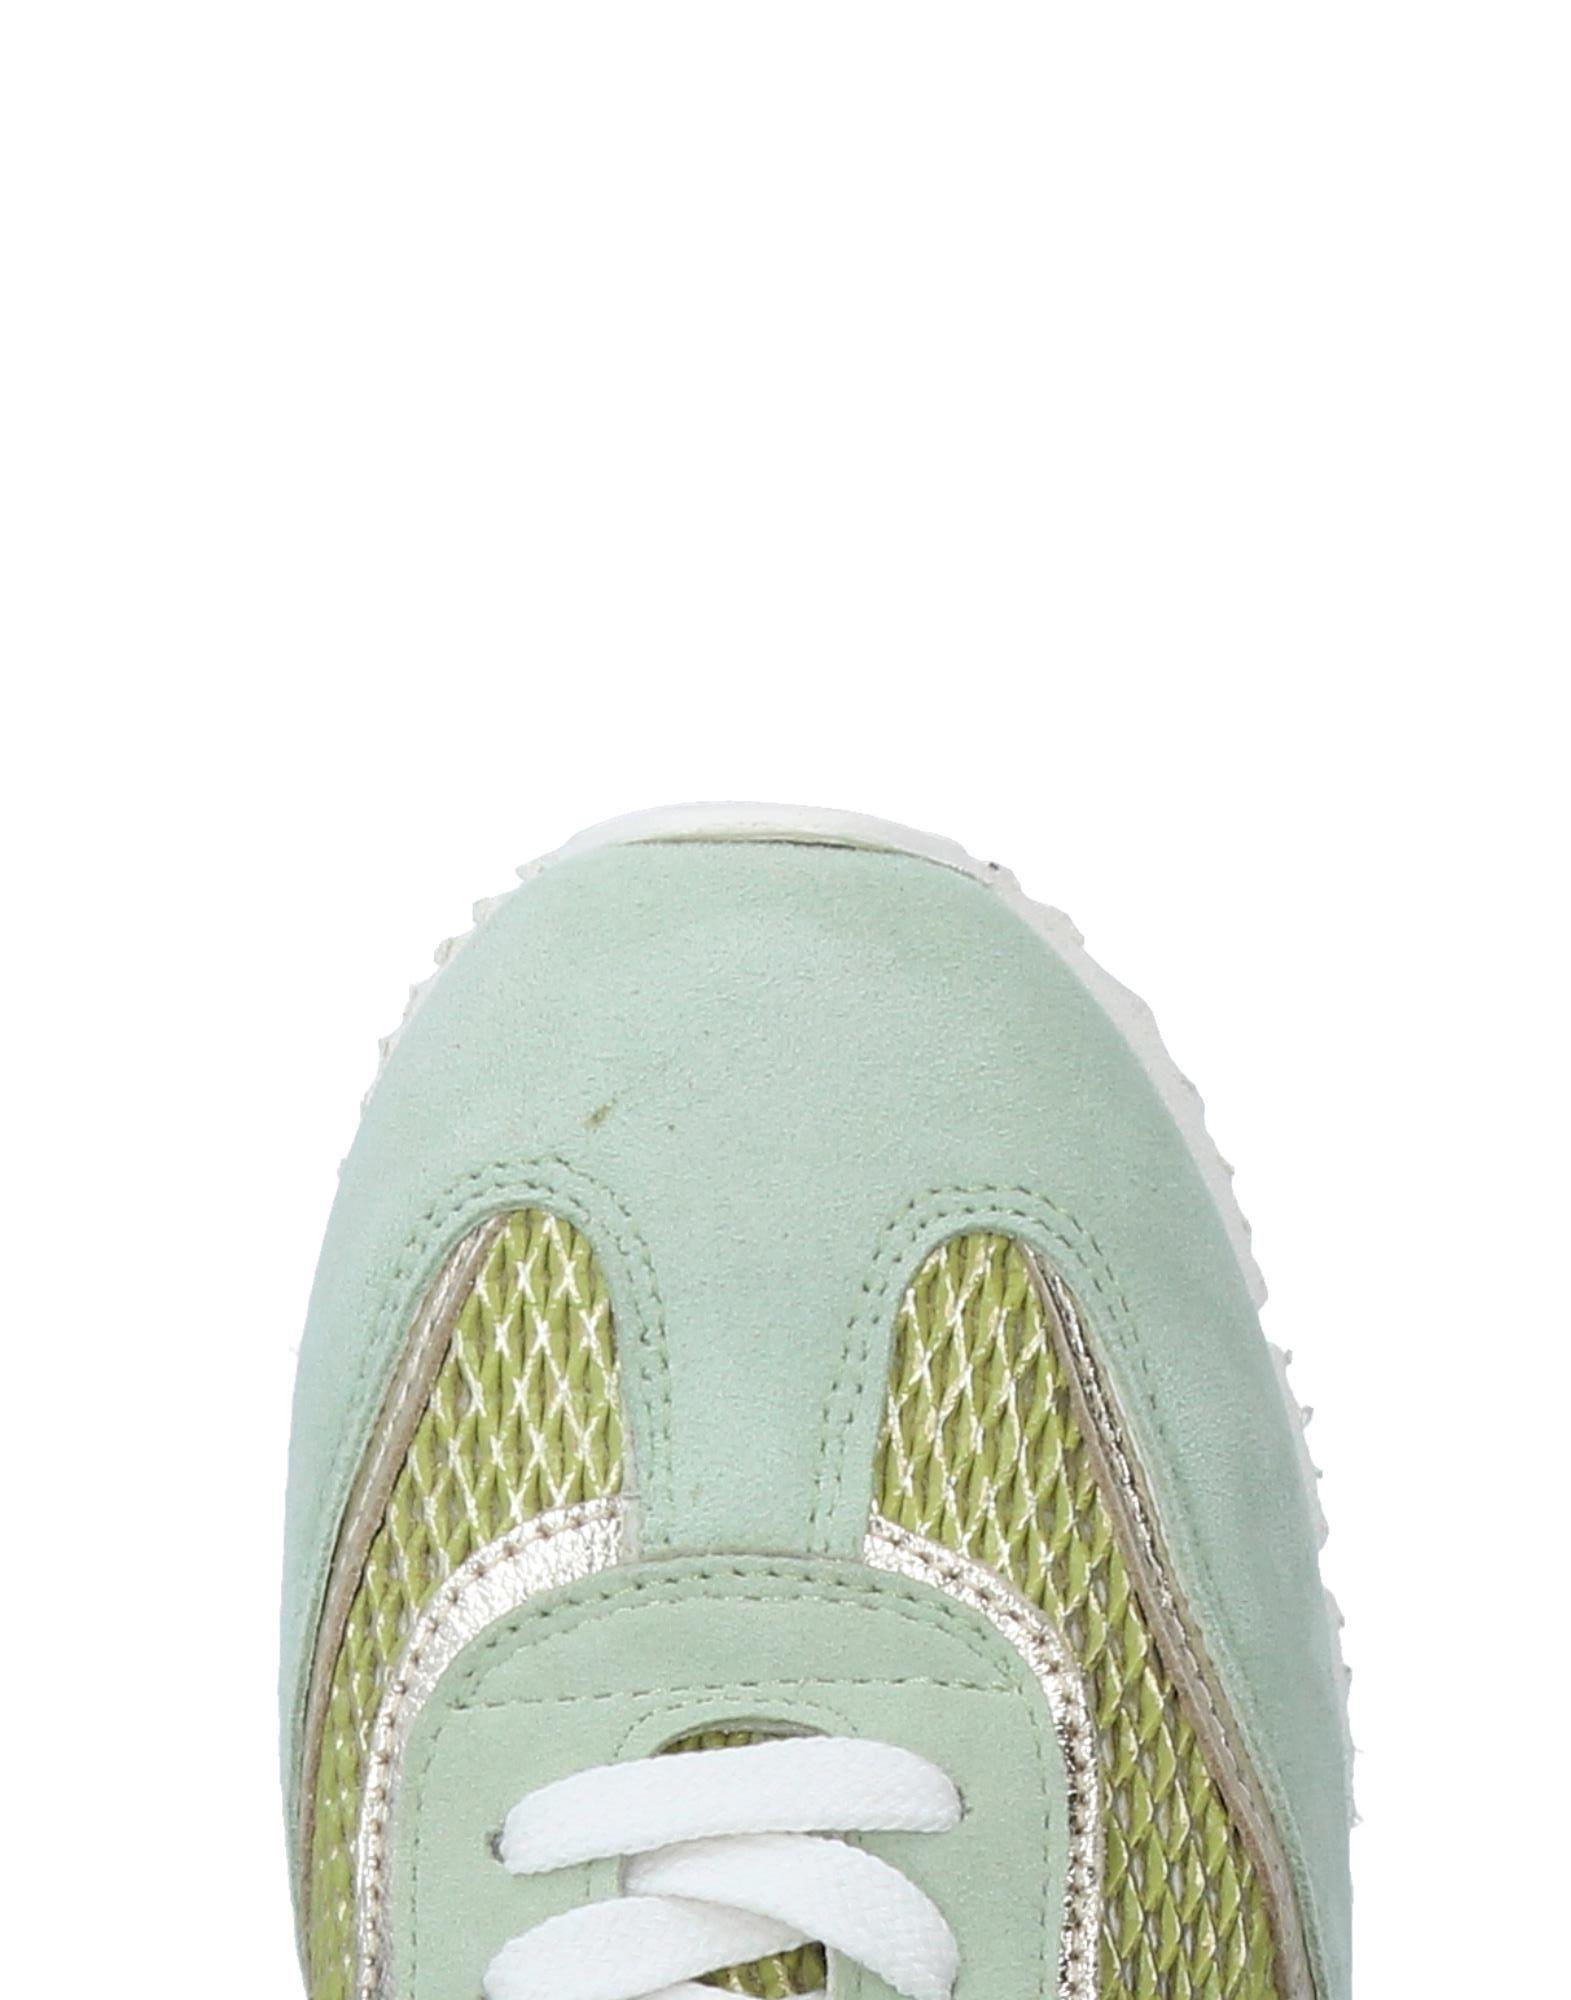 D'Acquasparta Leather Low-tops & Sneakers in Light Green (Green)